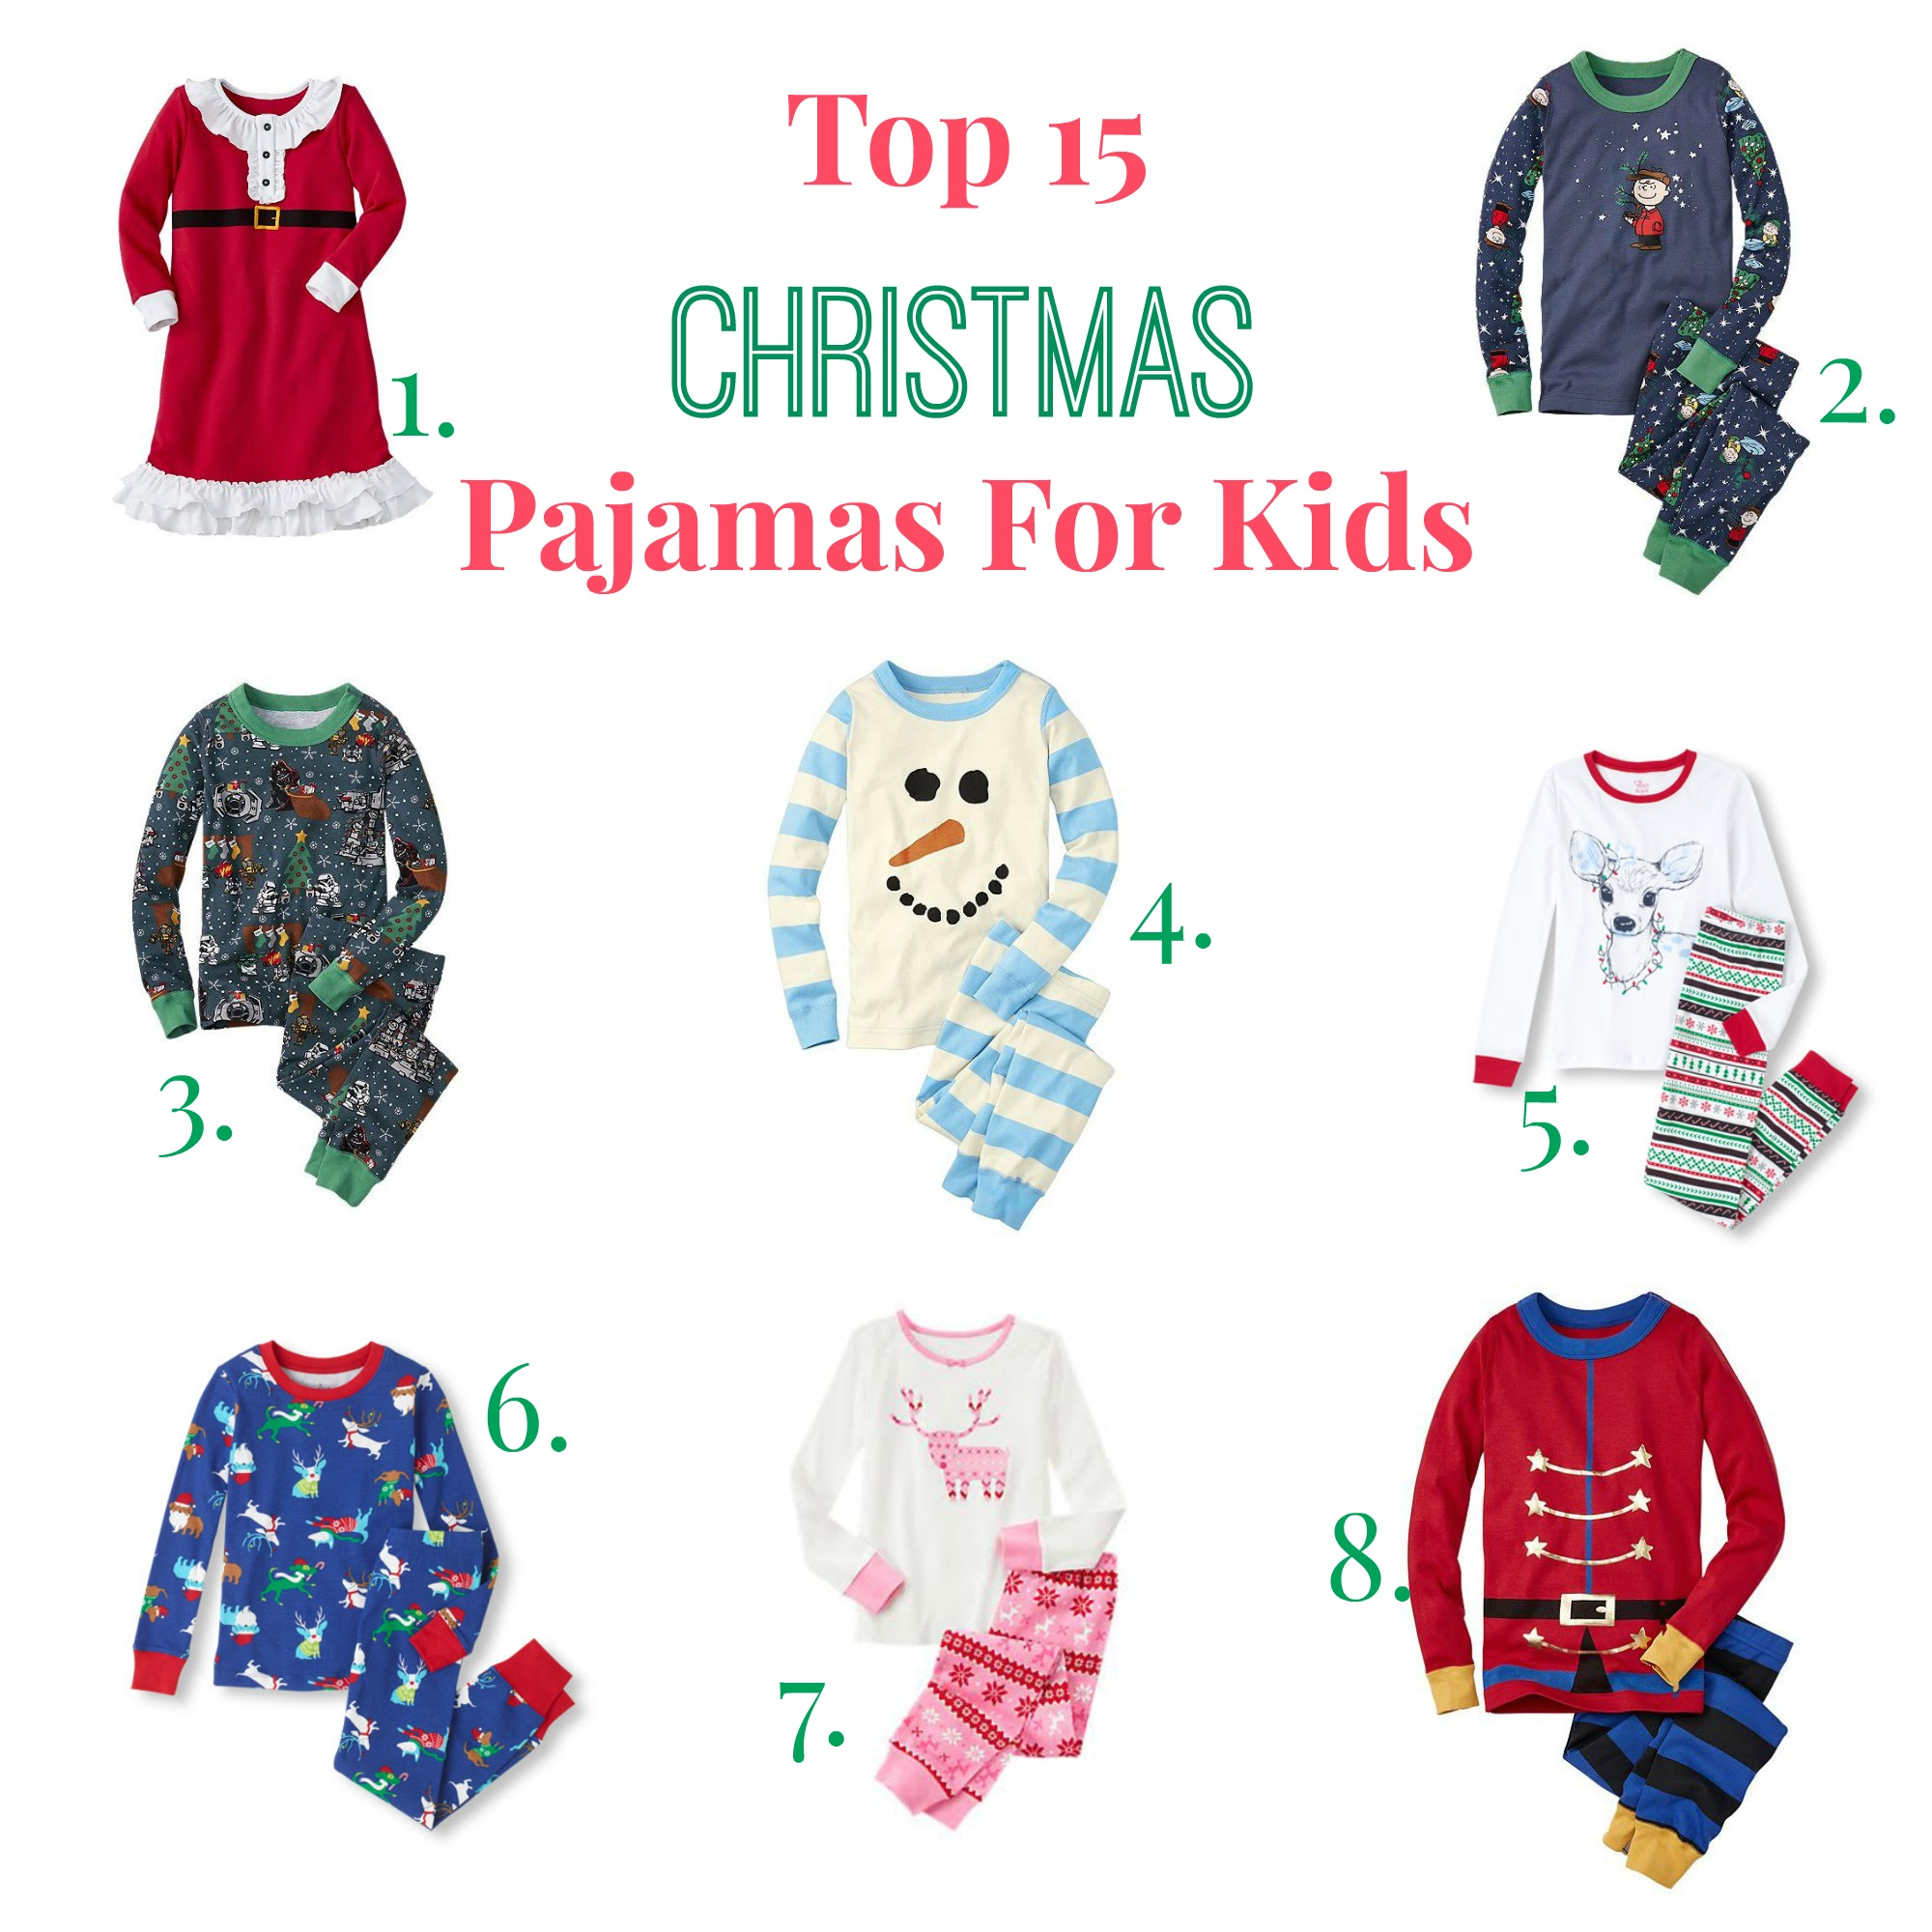 Top 15 Christmas Pajamas for Kids